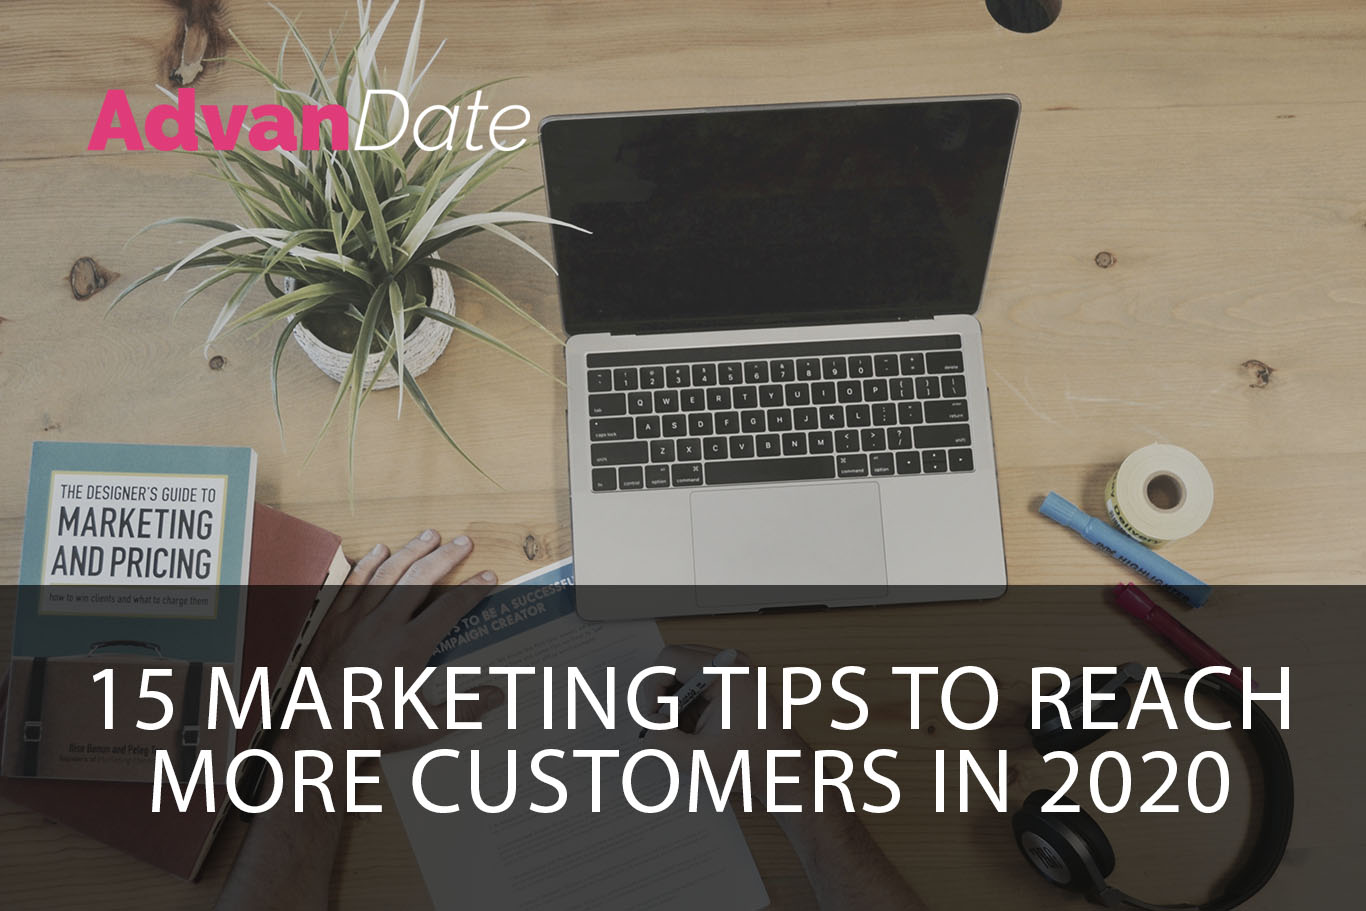 15 Marketing Tips to reach more customers in 2020